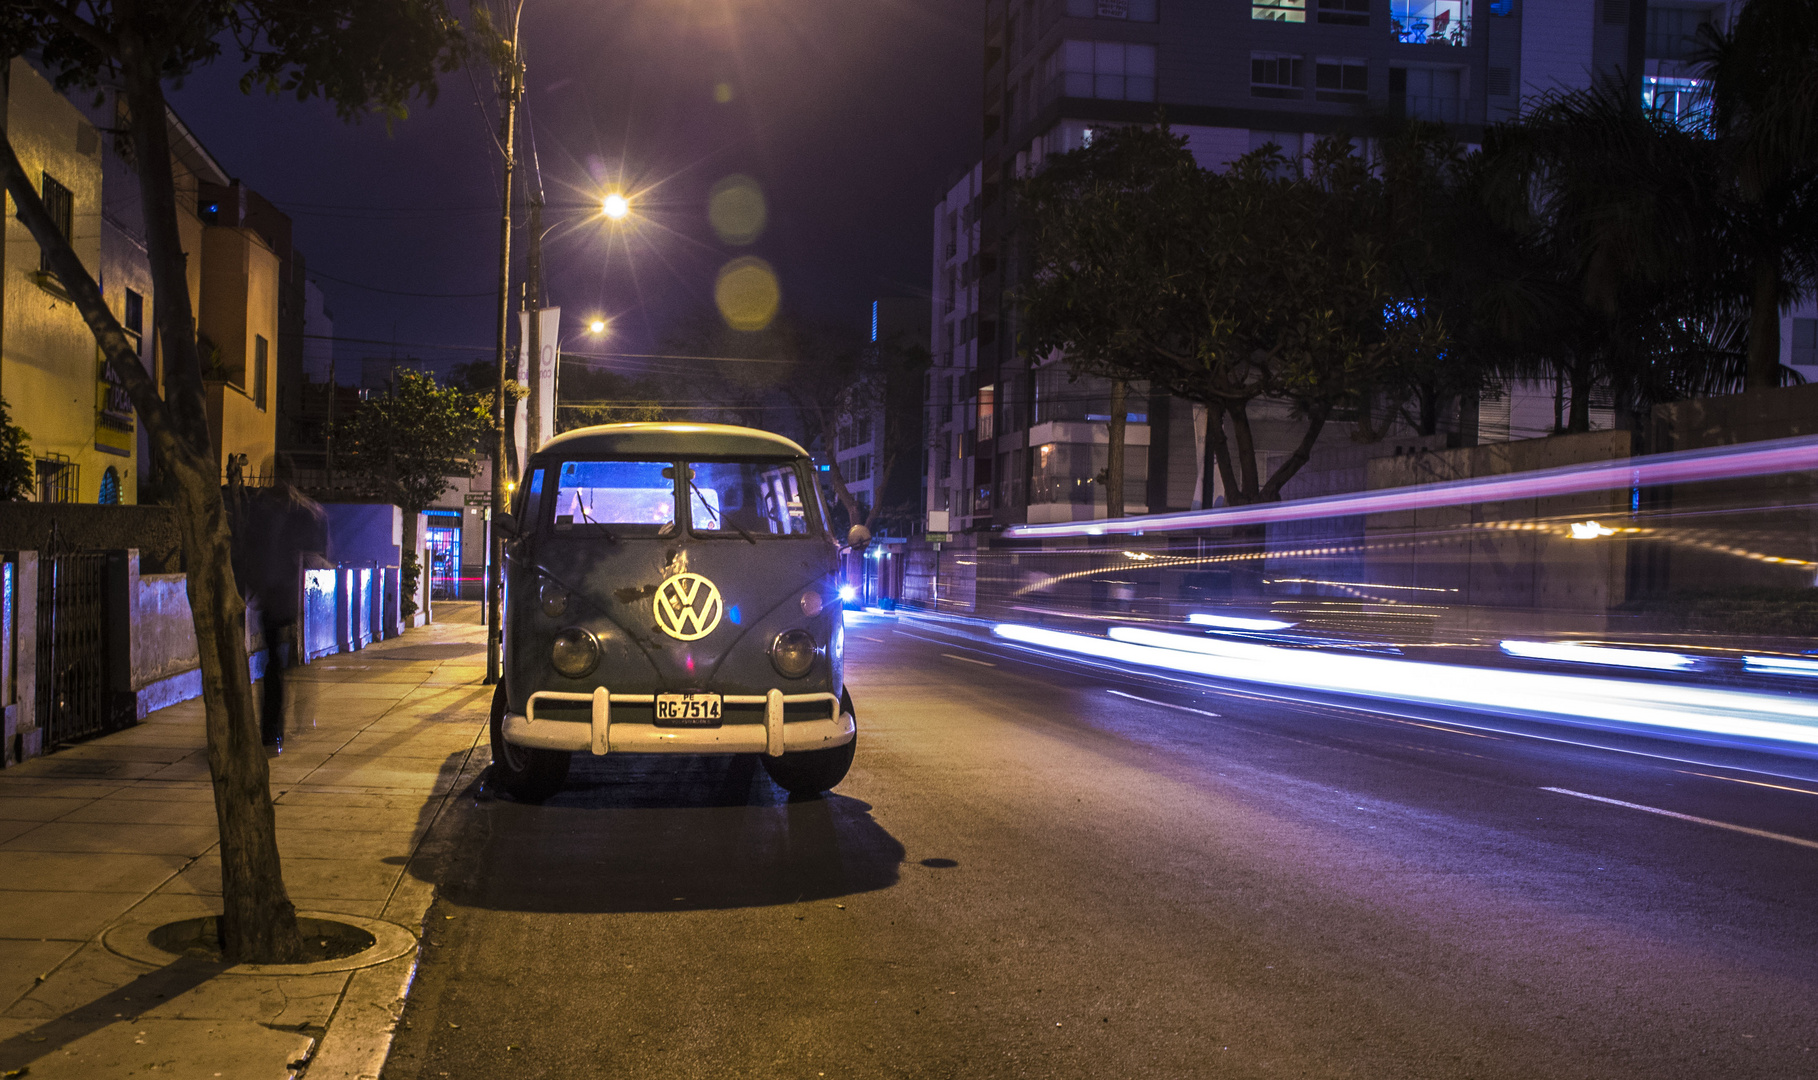 On the streets of Lima